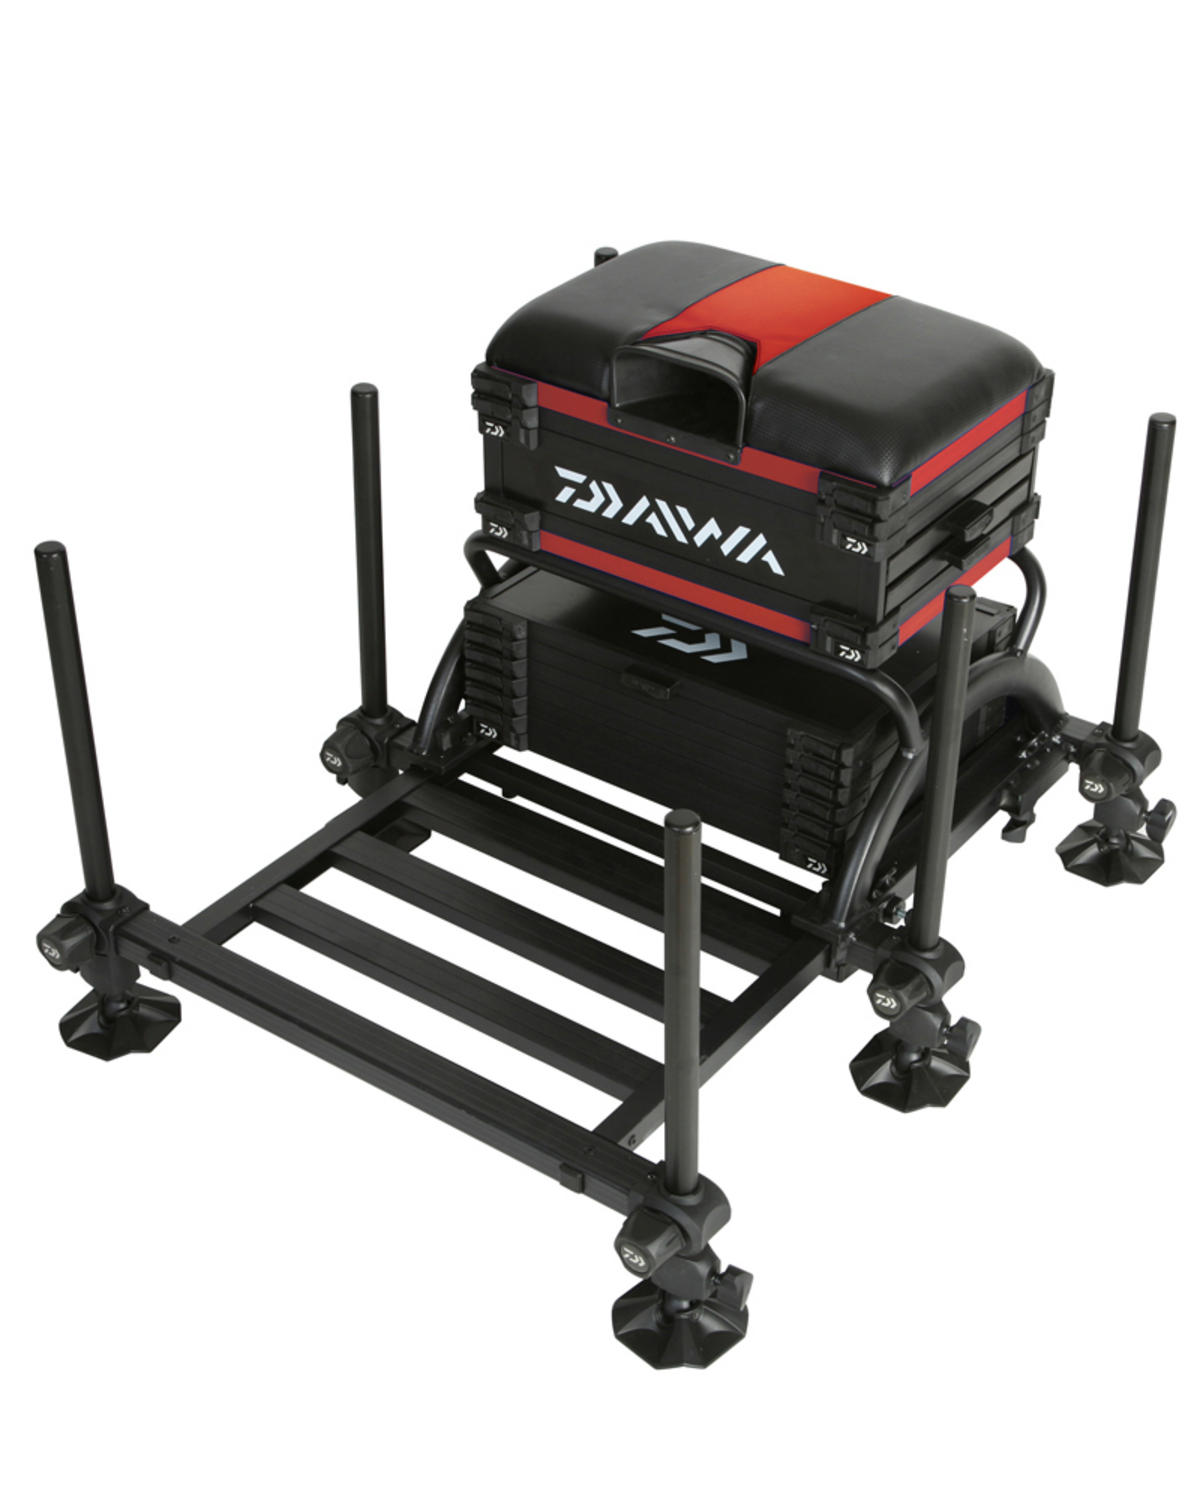 Daiwa Tournament 500 Seat Box Red/Black TN500SB